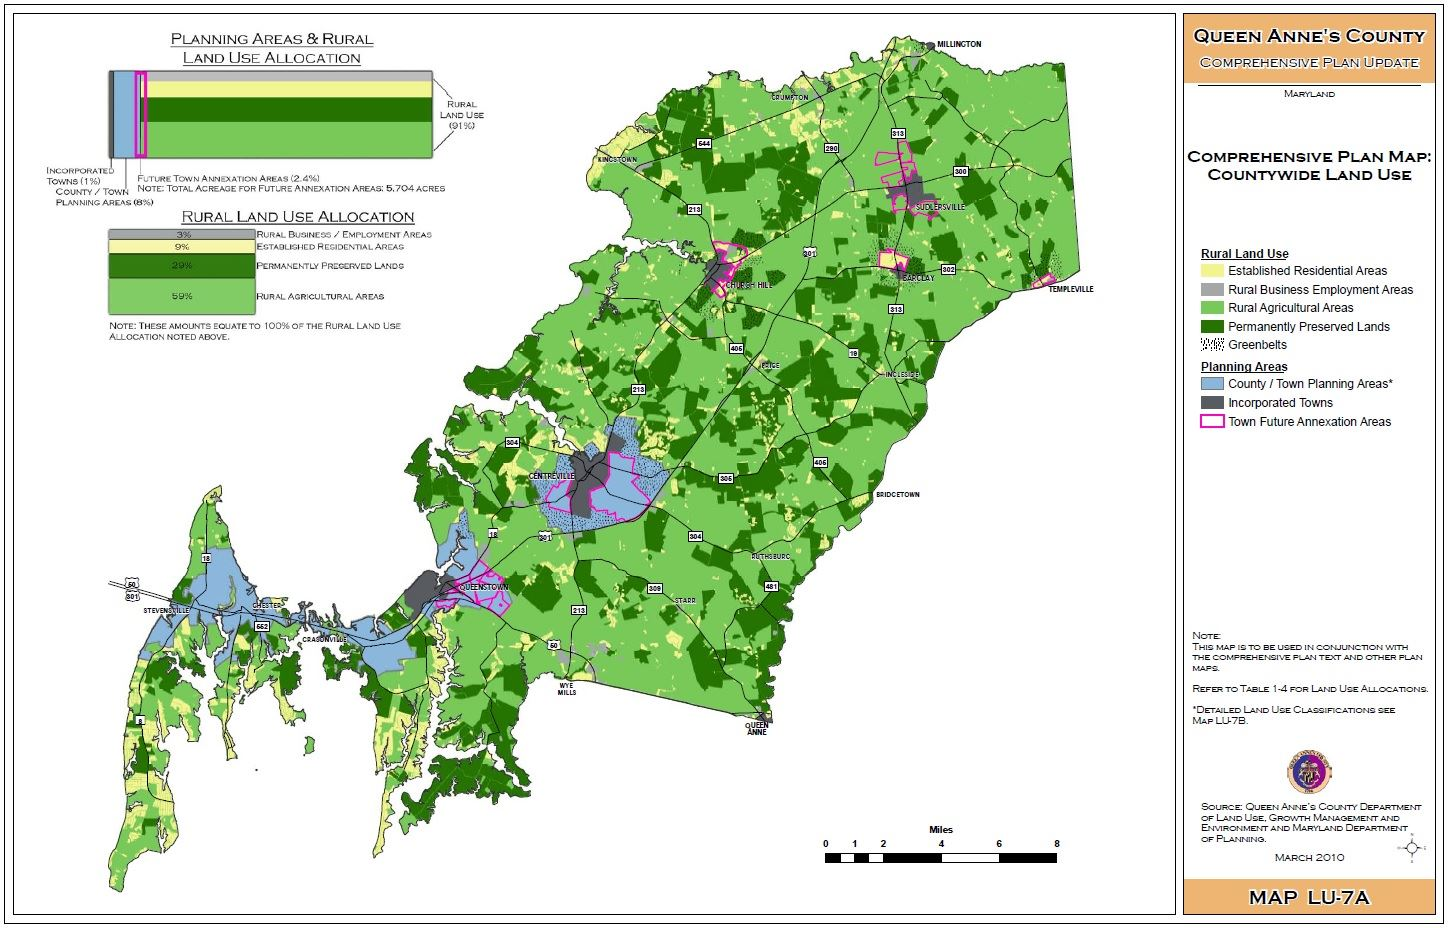 Countywide Land Use Map